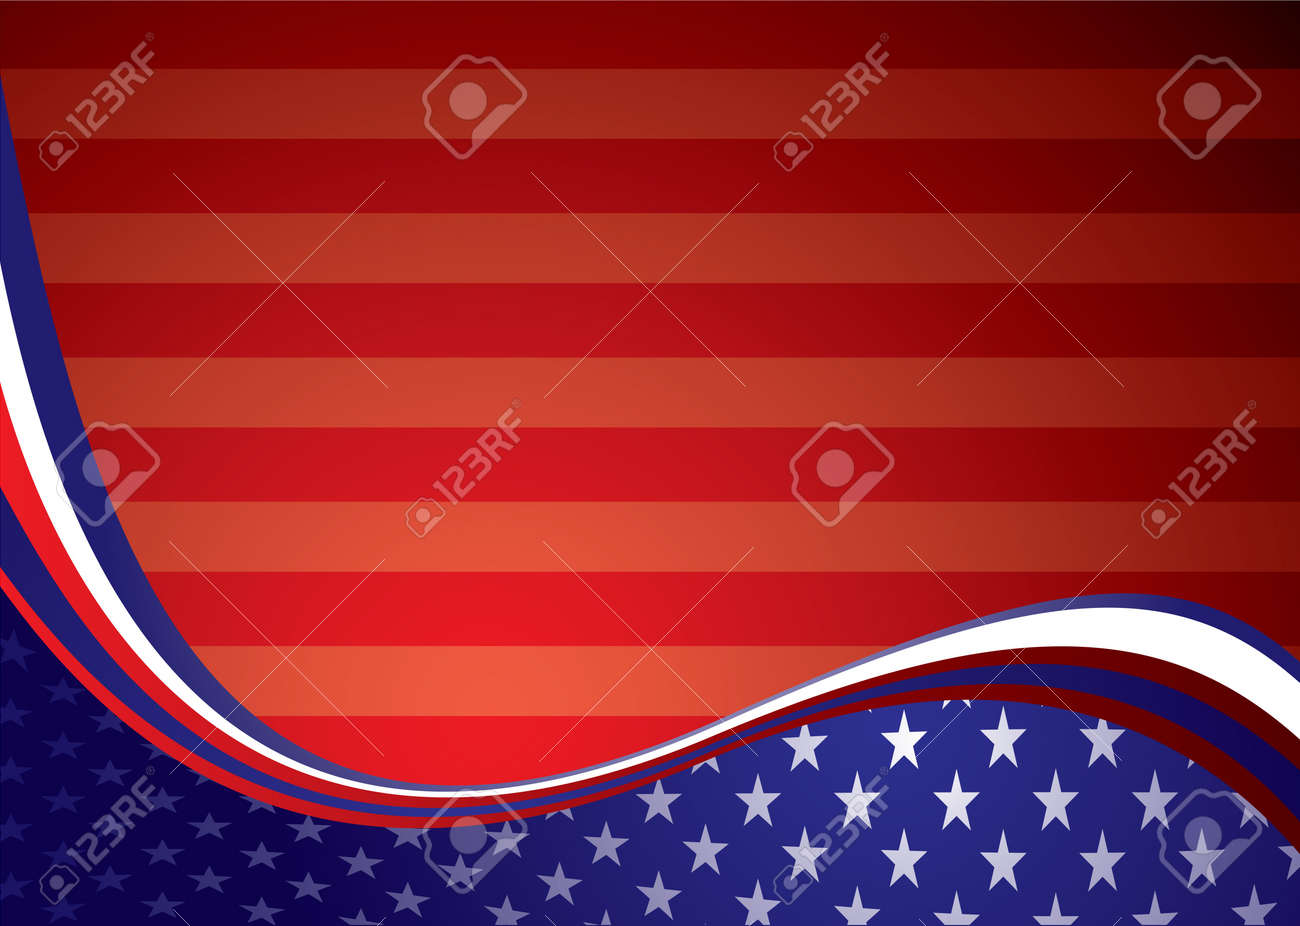 American inspired background illustration with stars and stripes - 7387325